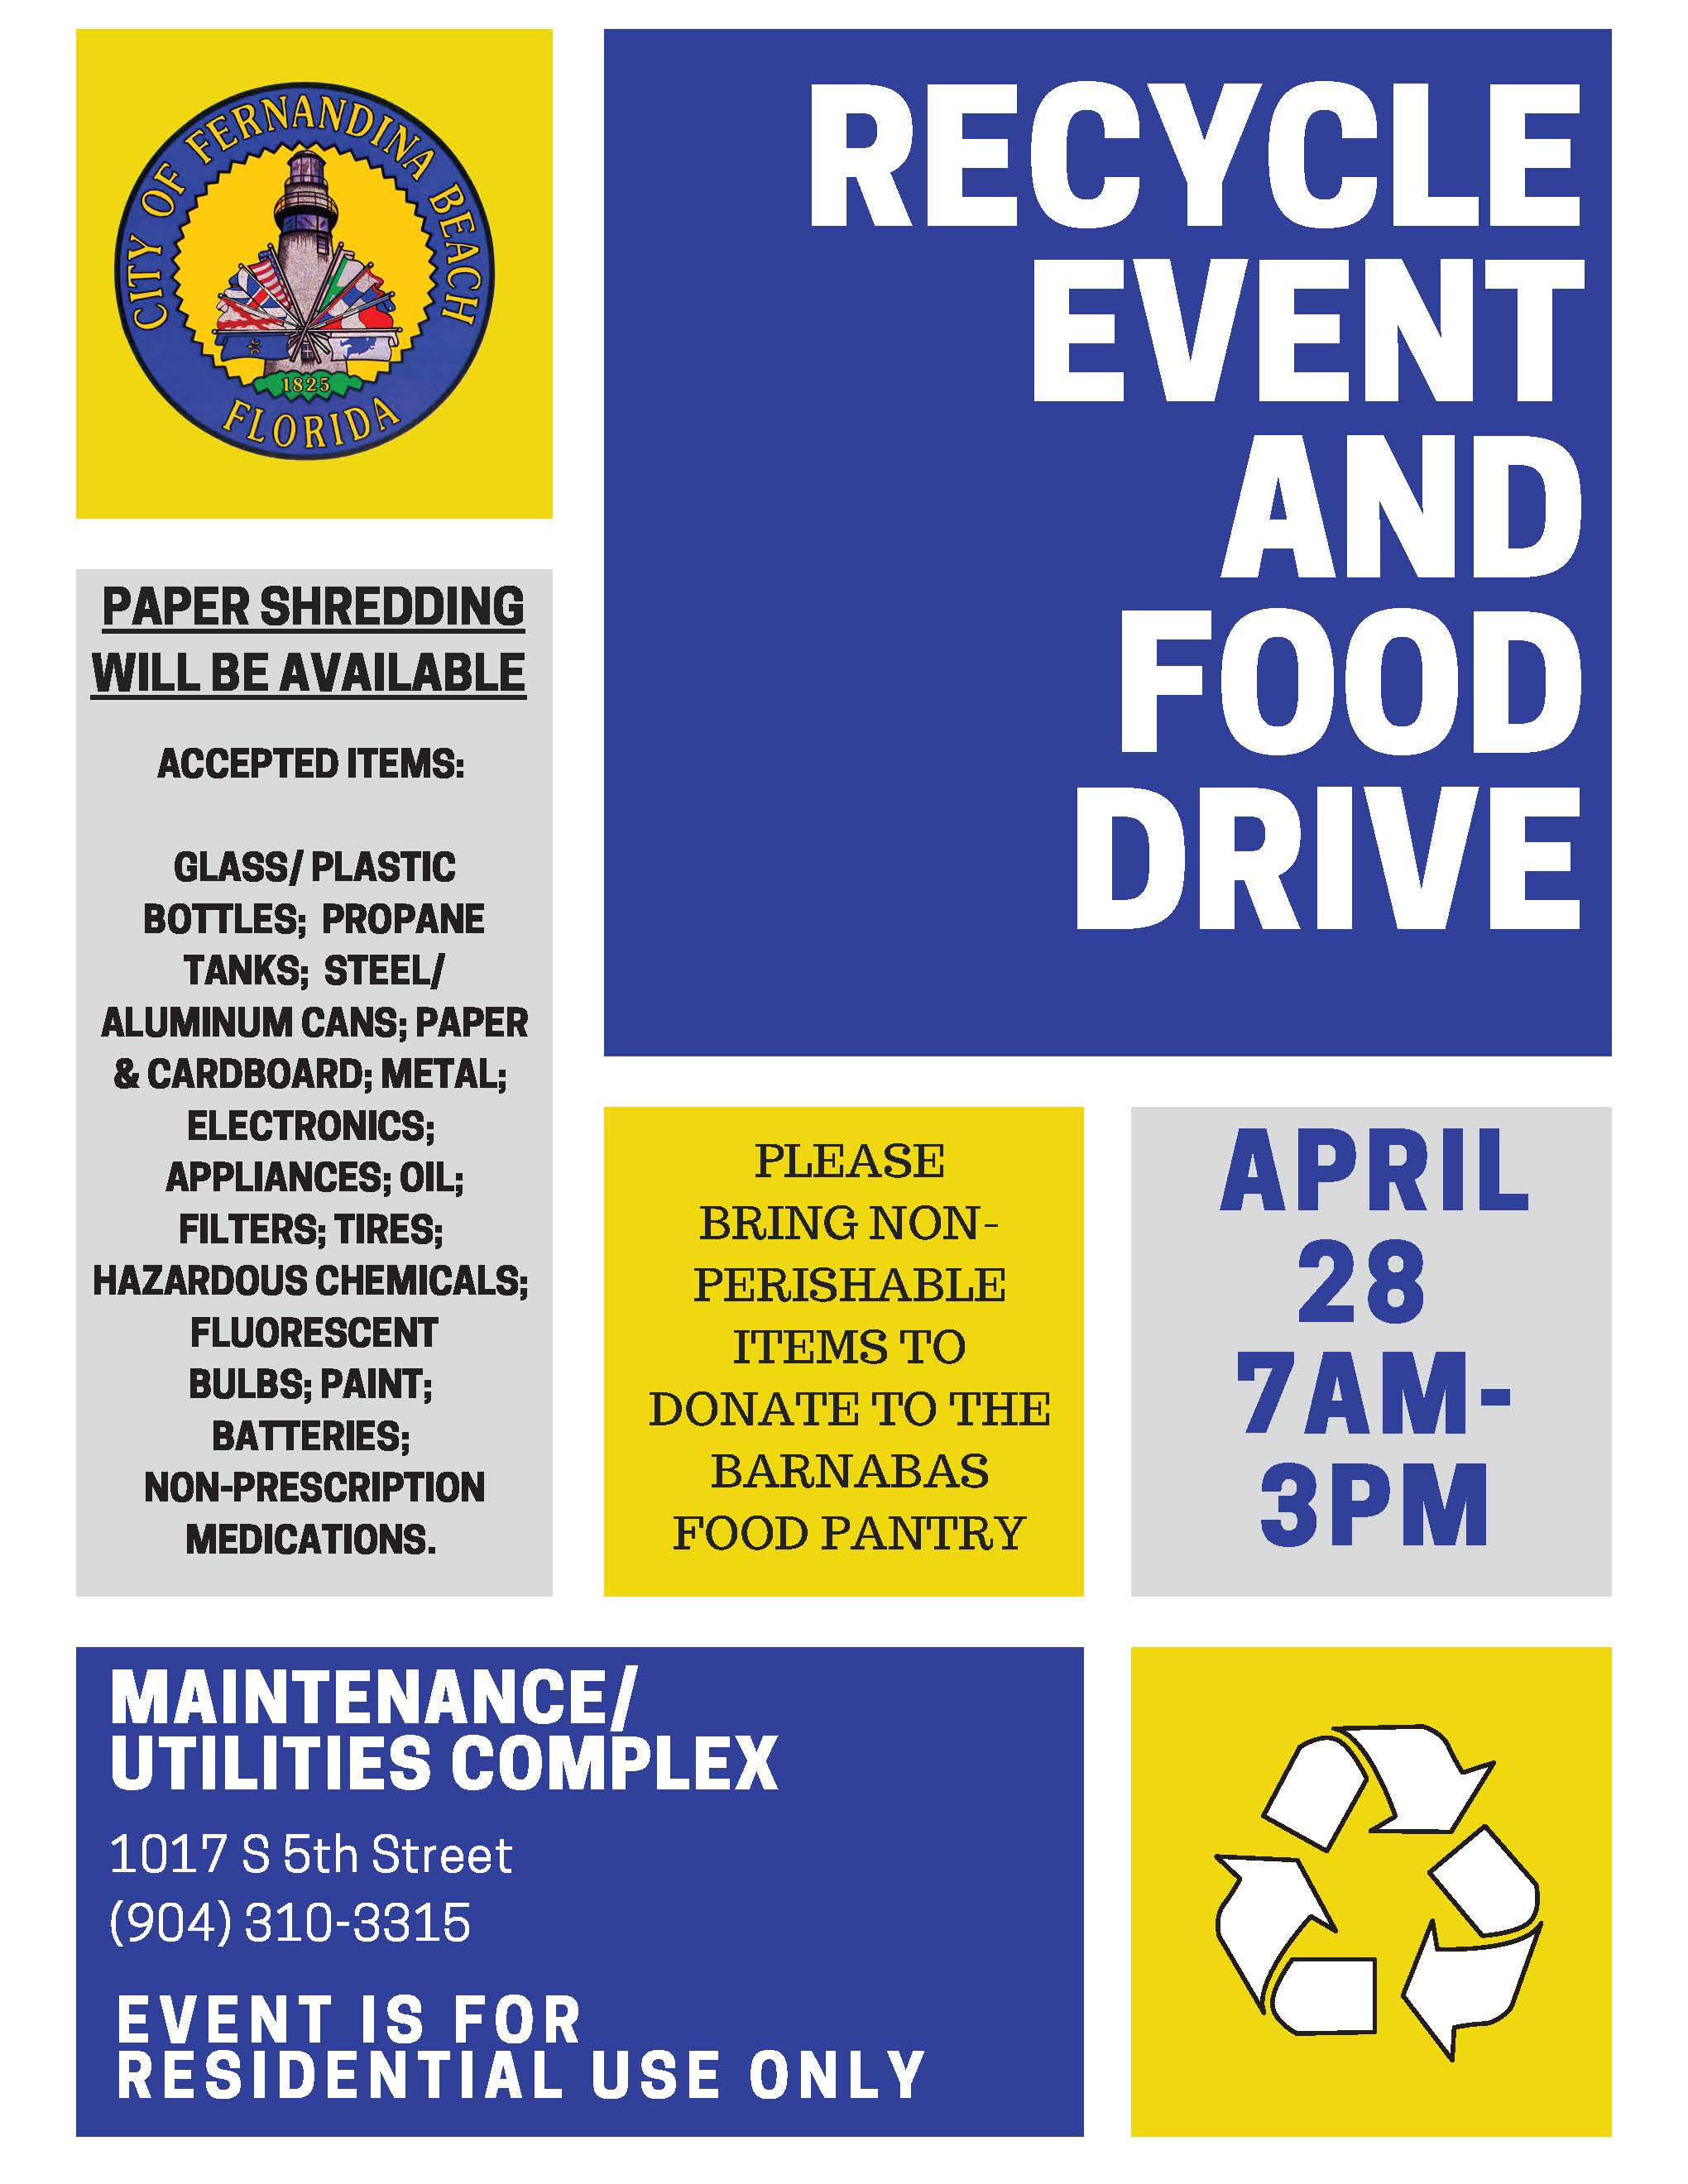 Recyle Event and Food Drive